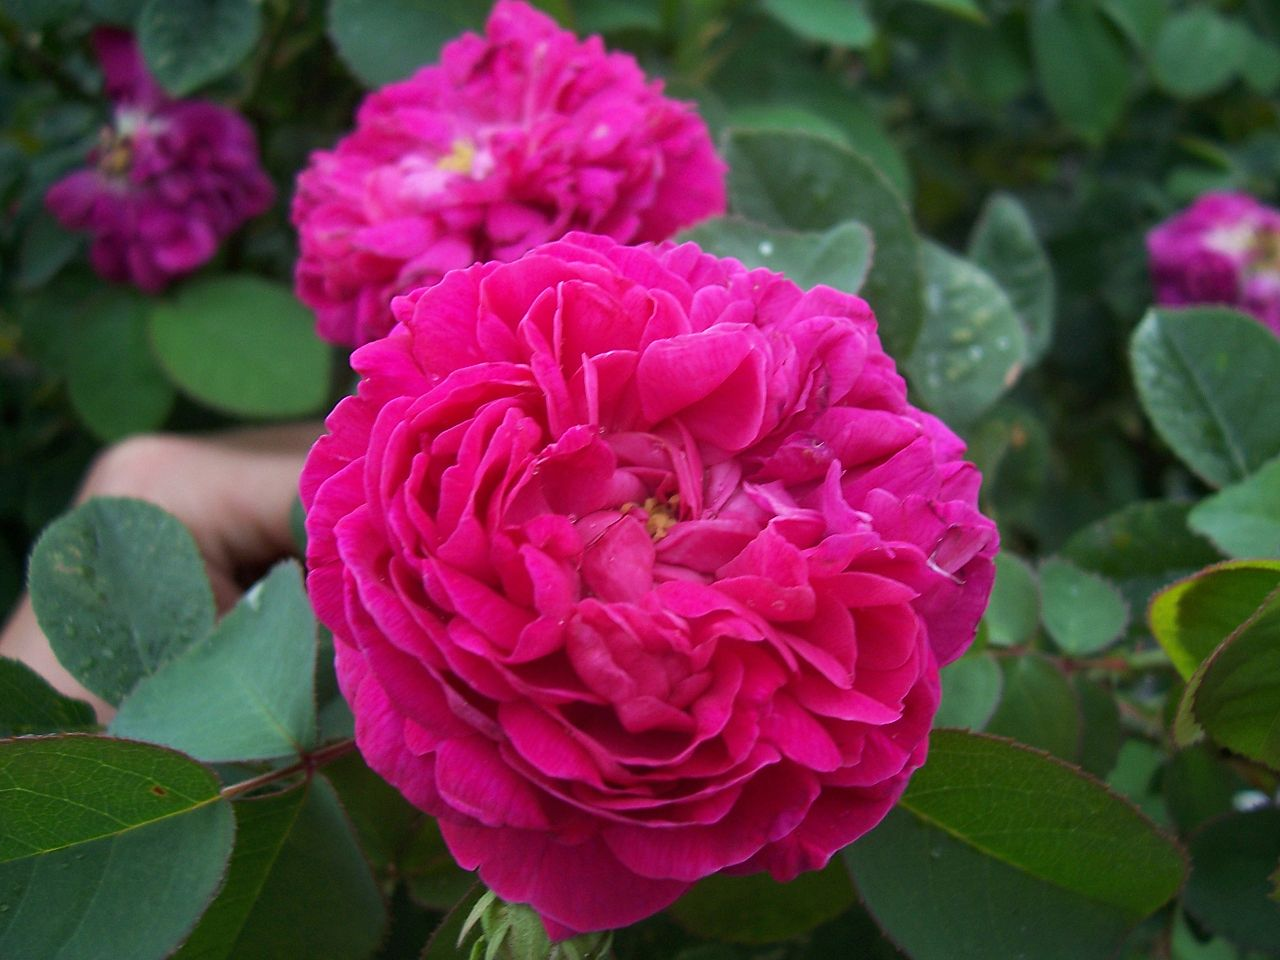 Rose de Rescht by Florian Moeckel (public domain)